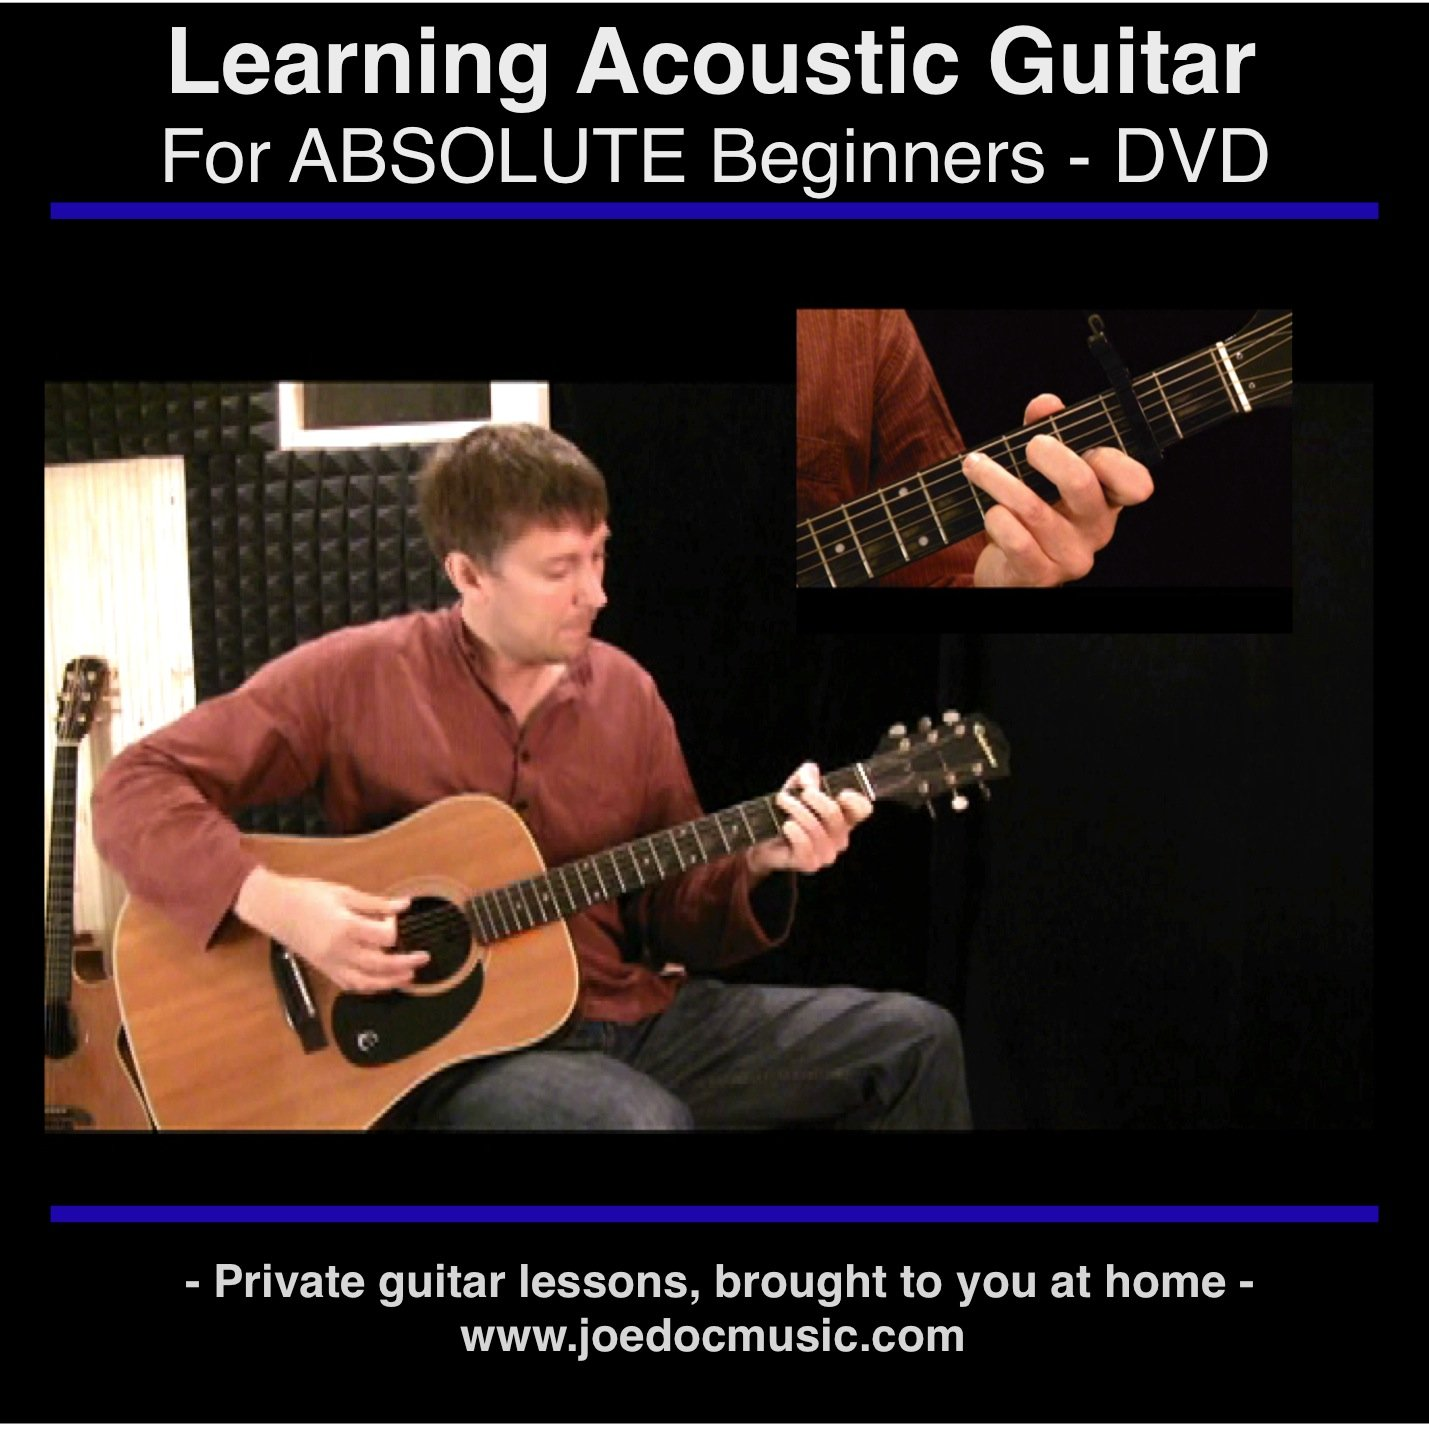 Learn To Play Acoustic Guitar For Absolute Beginners How Read Chord Diagrams Self Taught Lessons Best Dvd Learning Method Joe Dochtermann Movies Tv